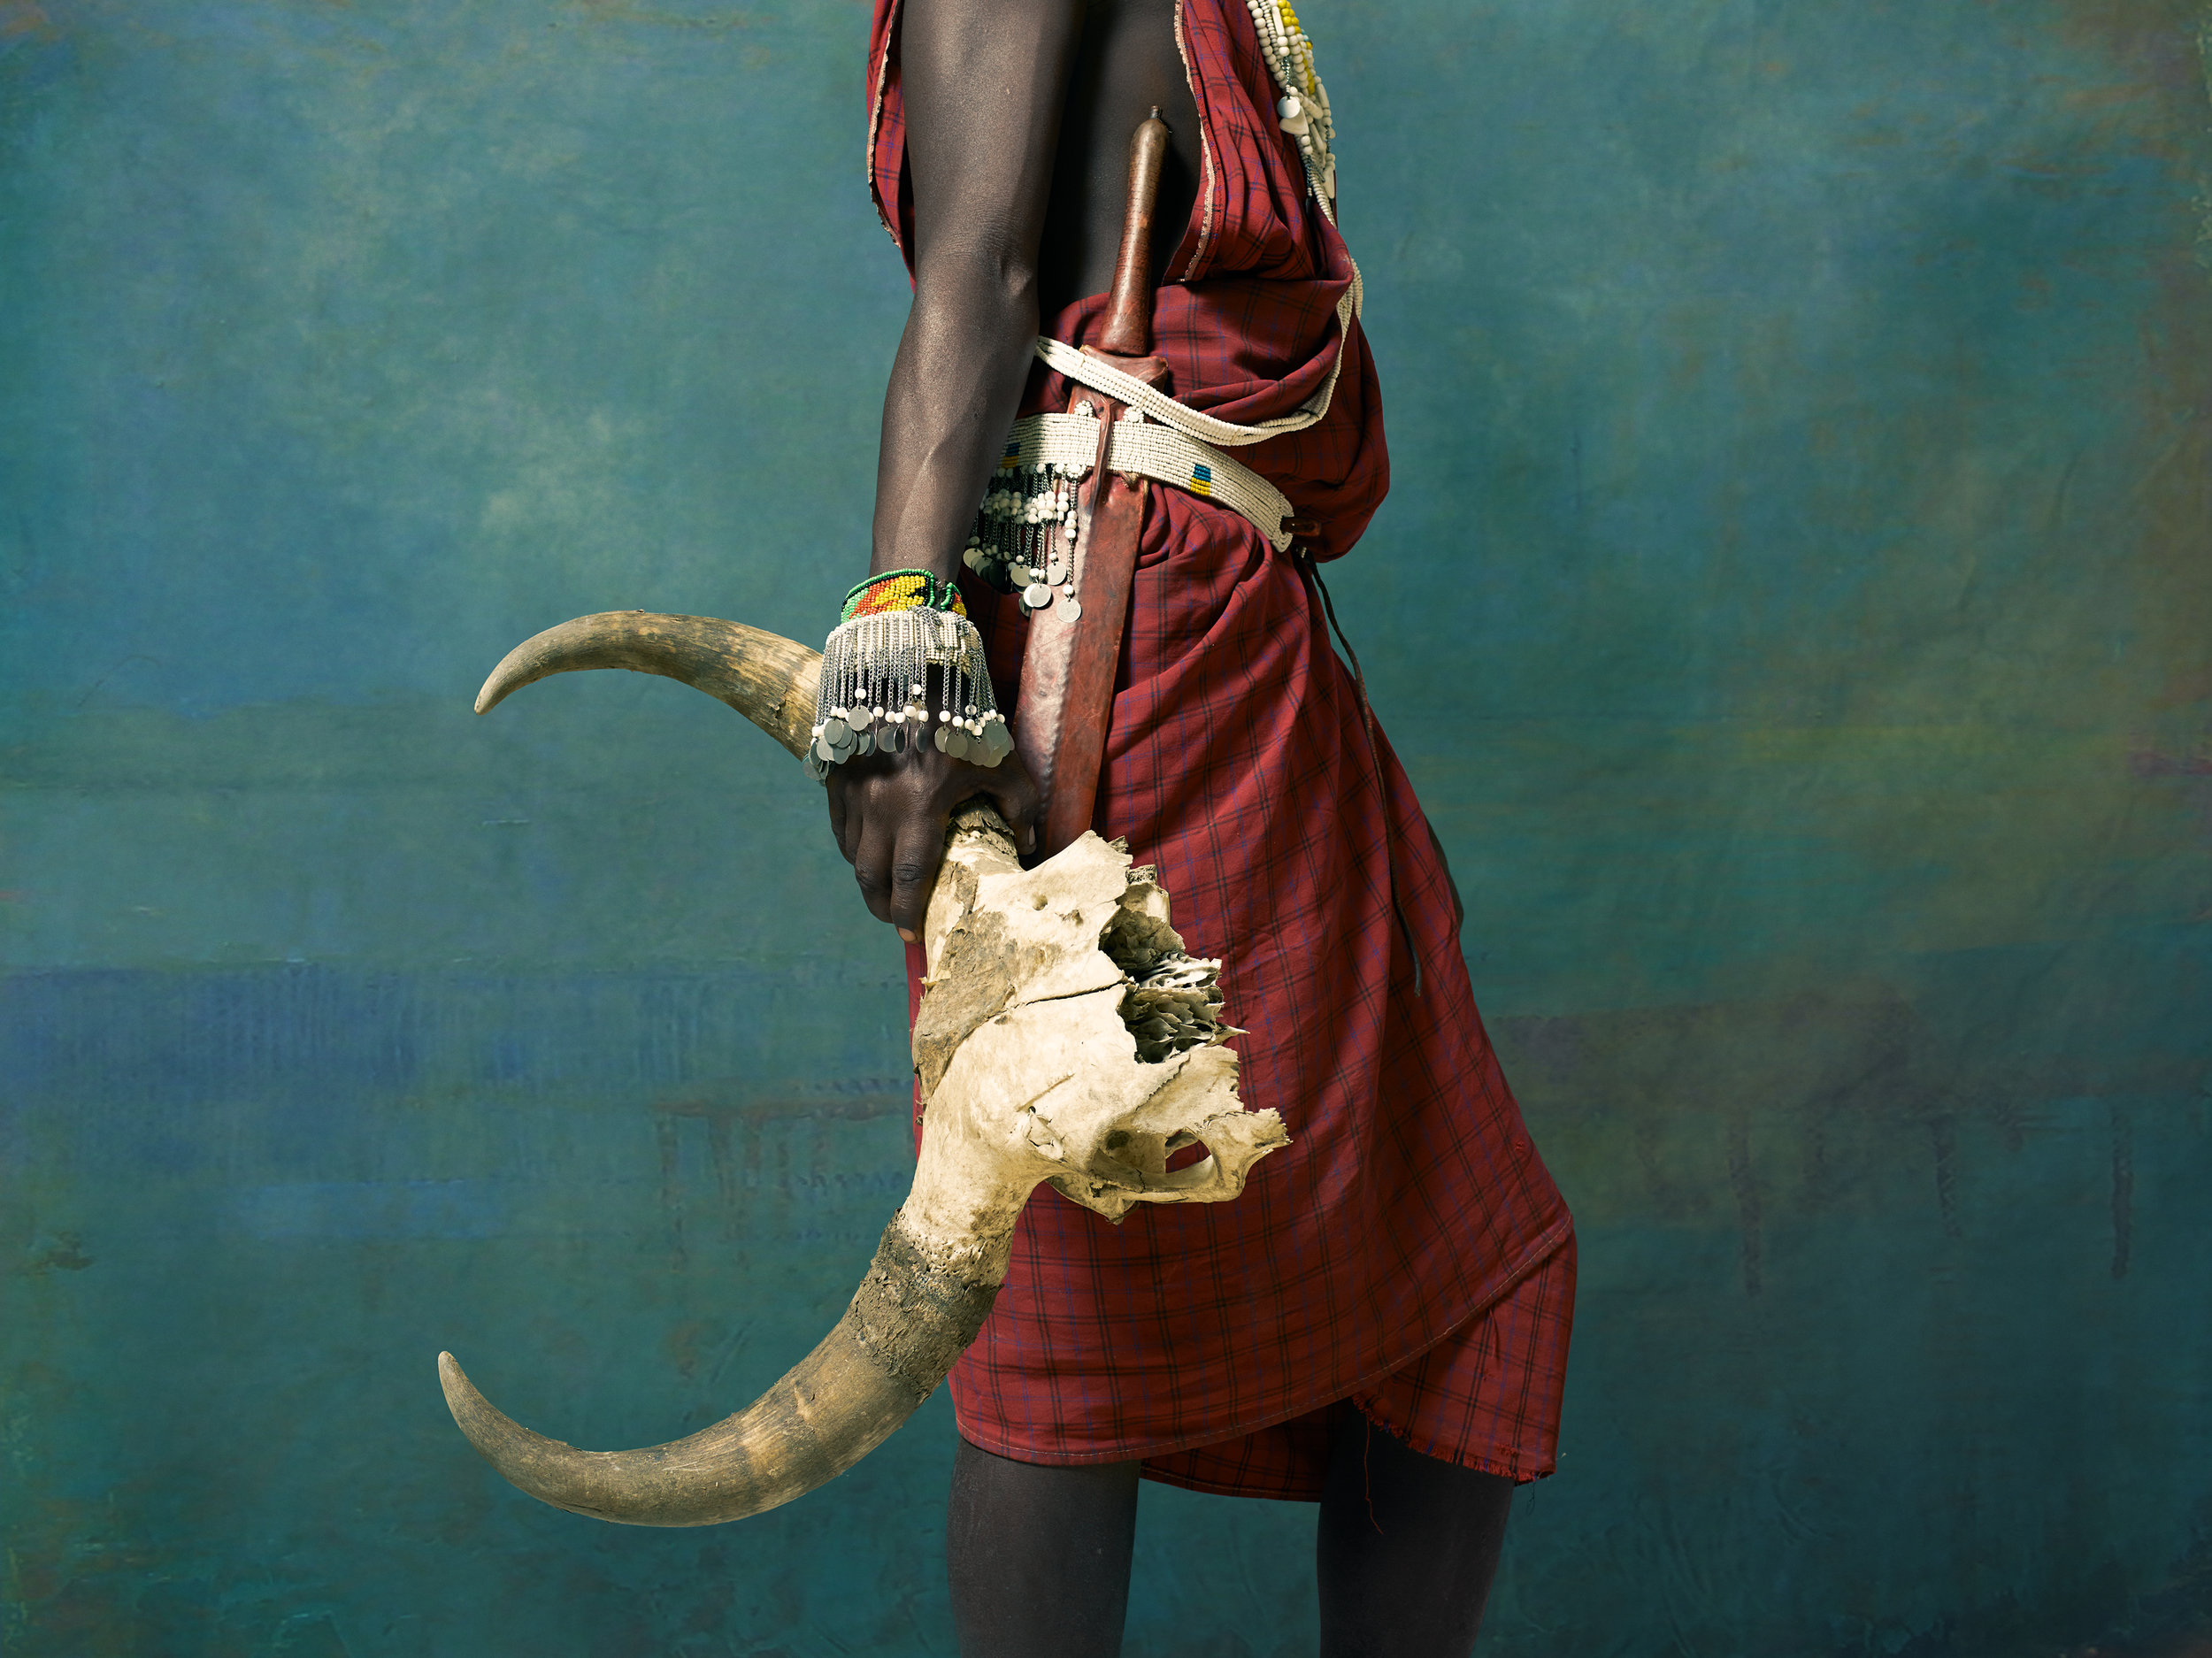 Tanzania_MaasaiWarriors_Studio_00181_FINAL.jpg